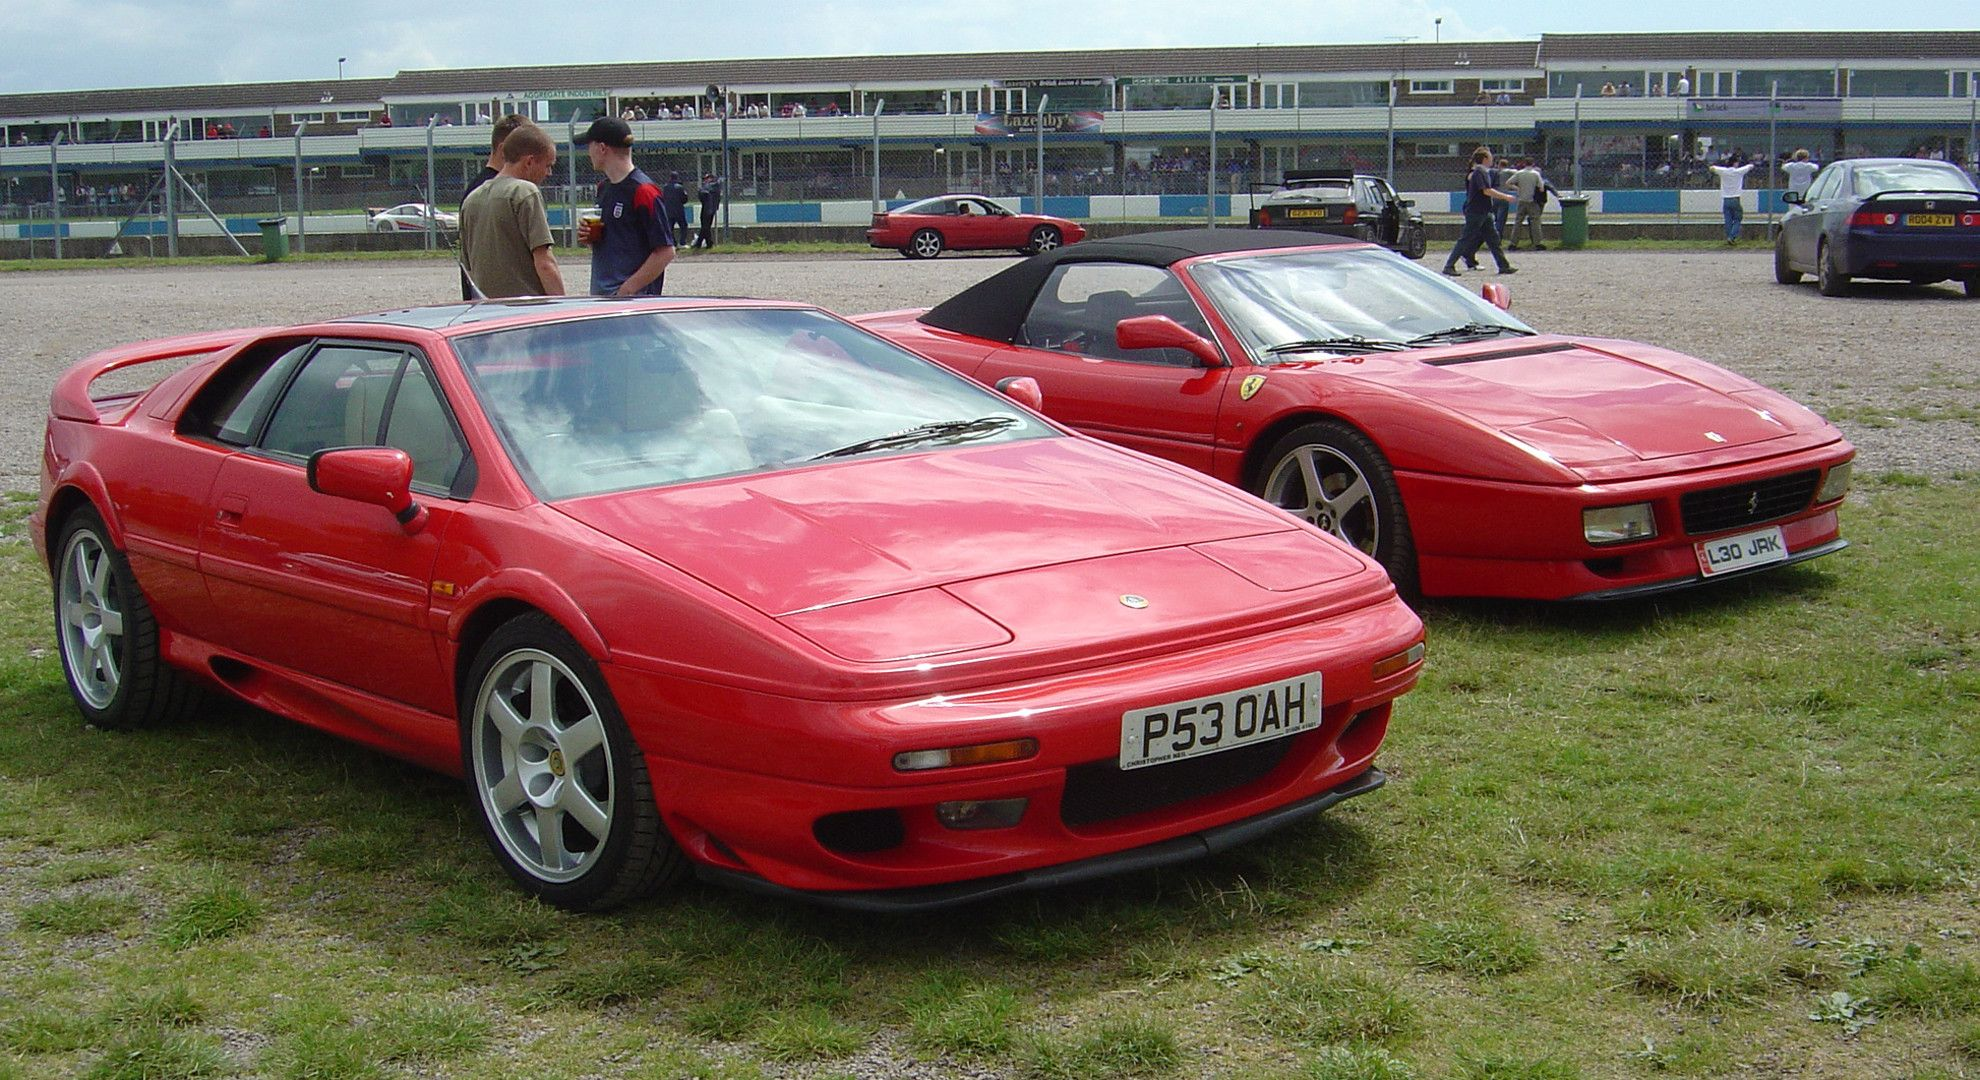 Lotus Esprit V8 & Ferrari 348GT Competizione with friends in background [1920x1080] Need #iPhone #6S #Plus #Wallpaper/ #Background for #IPhone6SPlus? Follow iPhone 6S Plus 3Wallpapers/ #Backgrounds Must to Have http://ift.tt/1SfrOMr